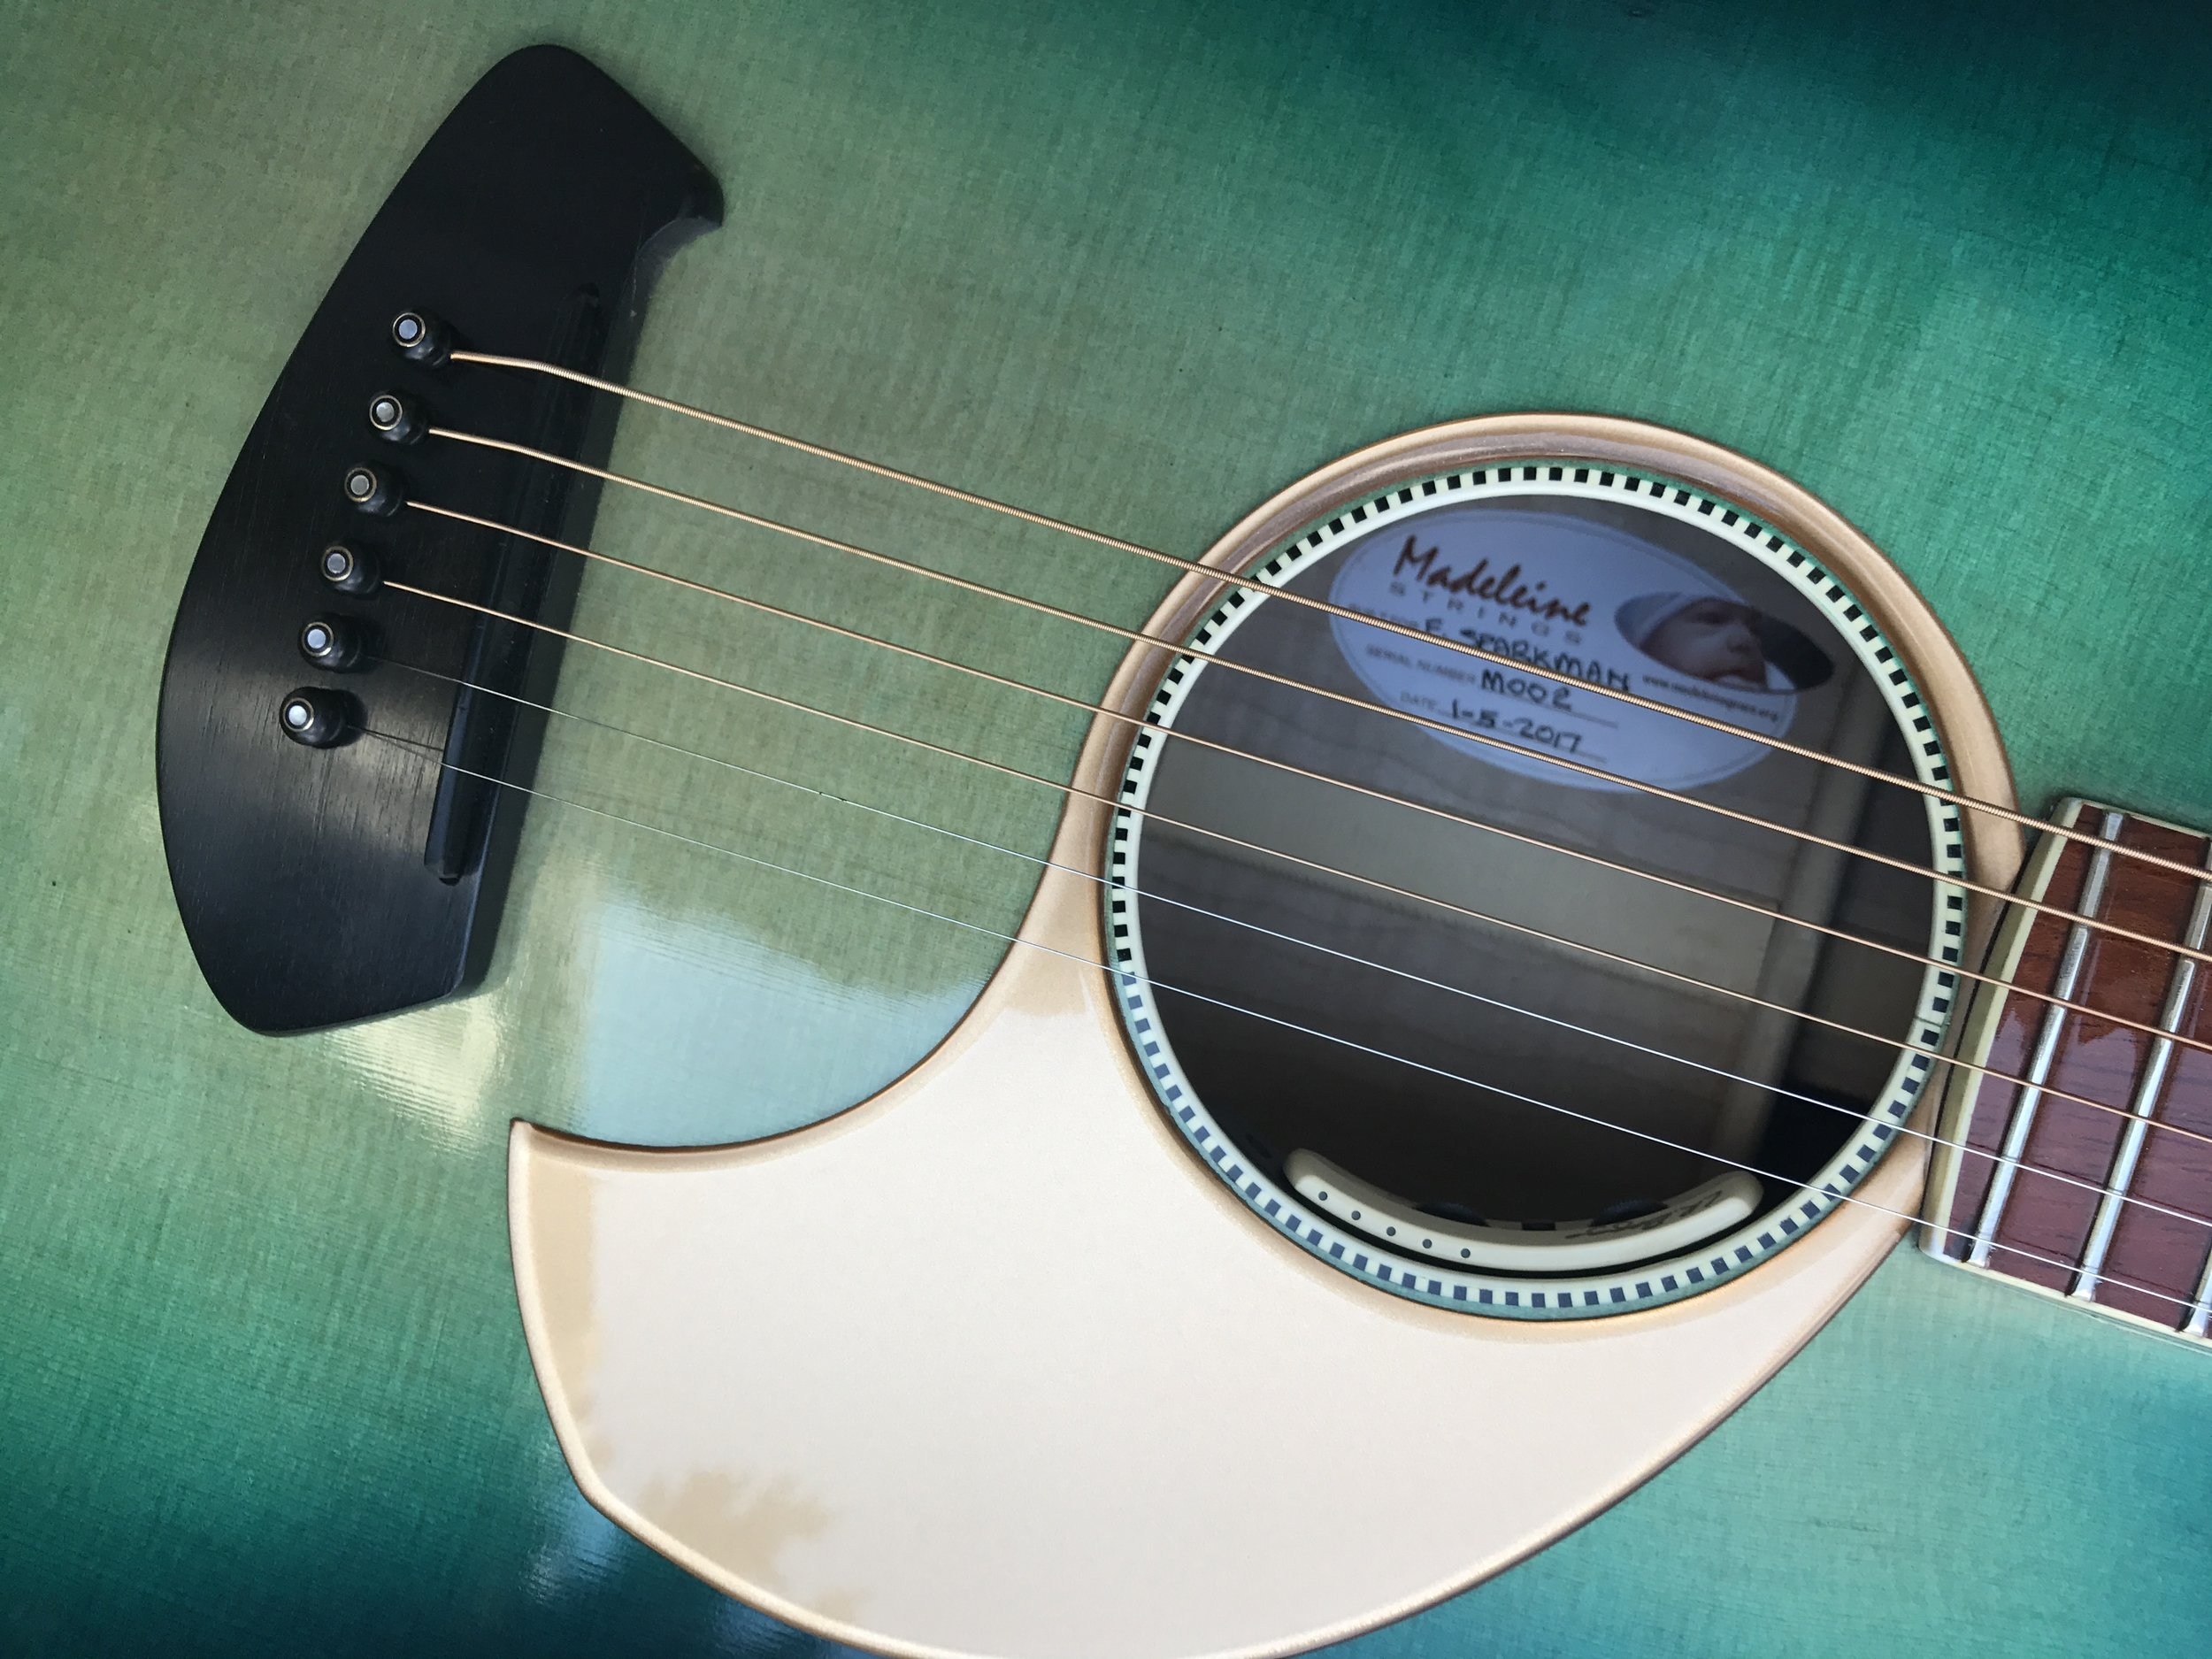 MADELEINE STRINGS 730L LARAMIE 6-STRING DREADNOUGHT